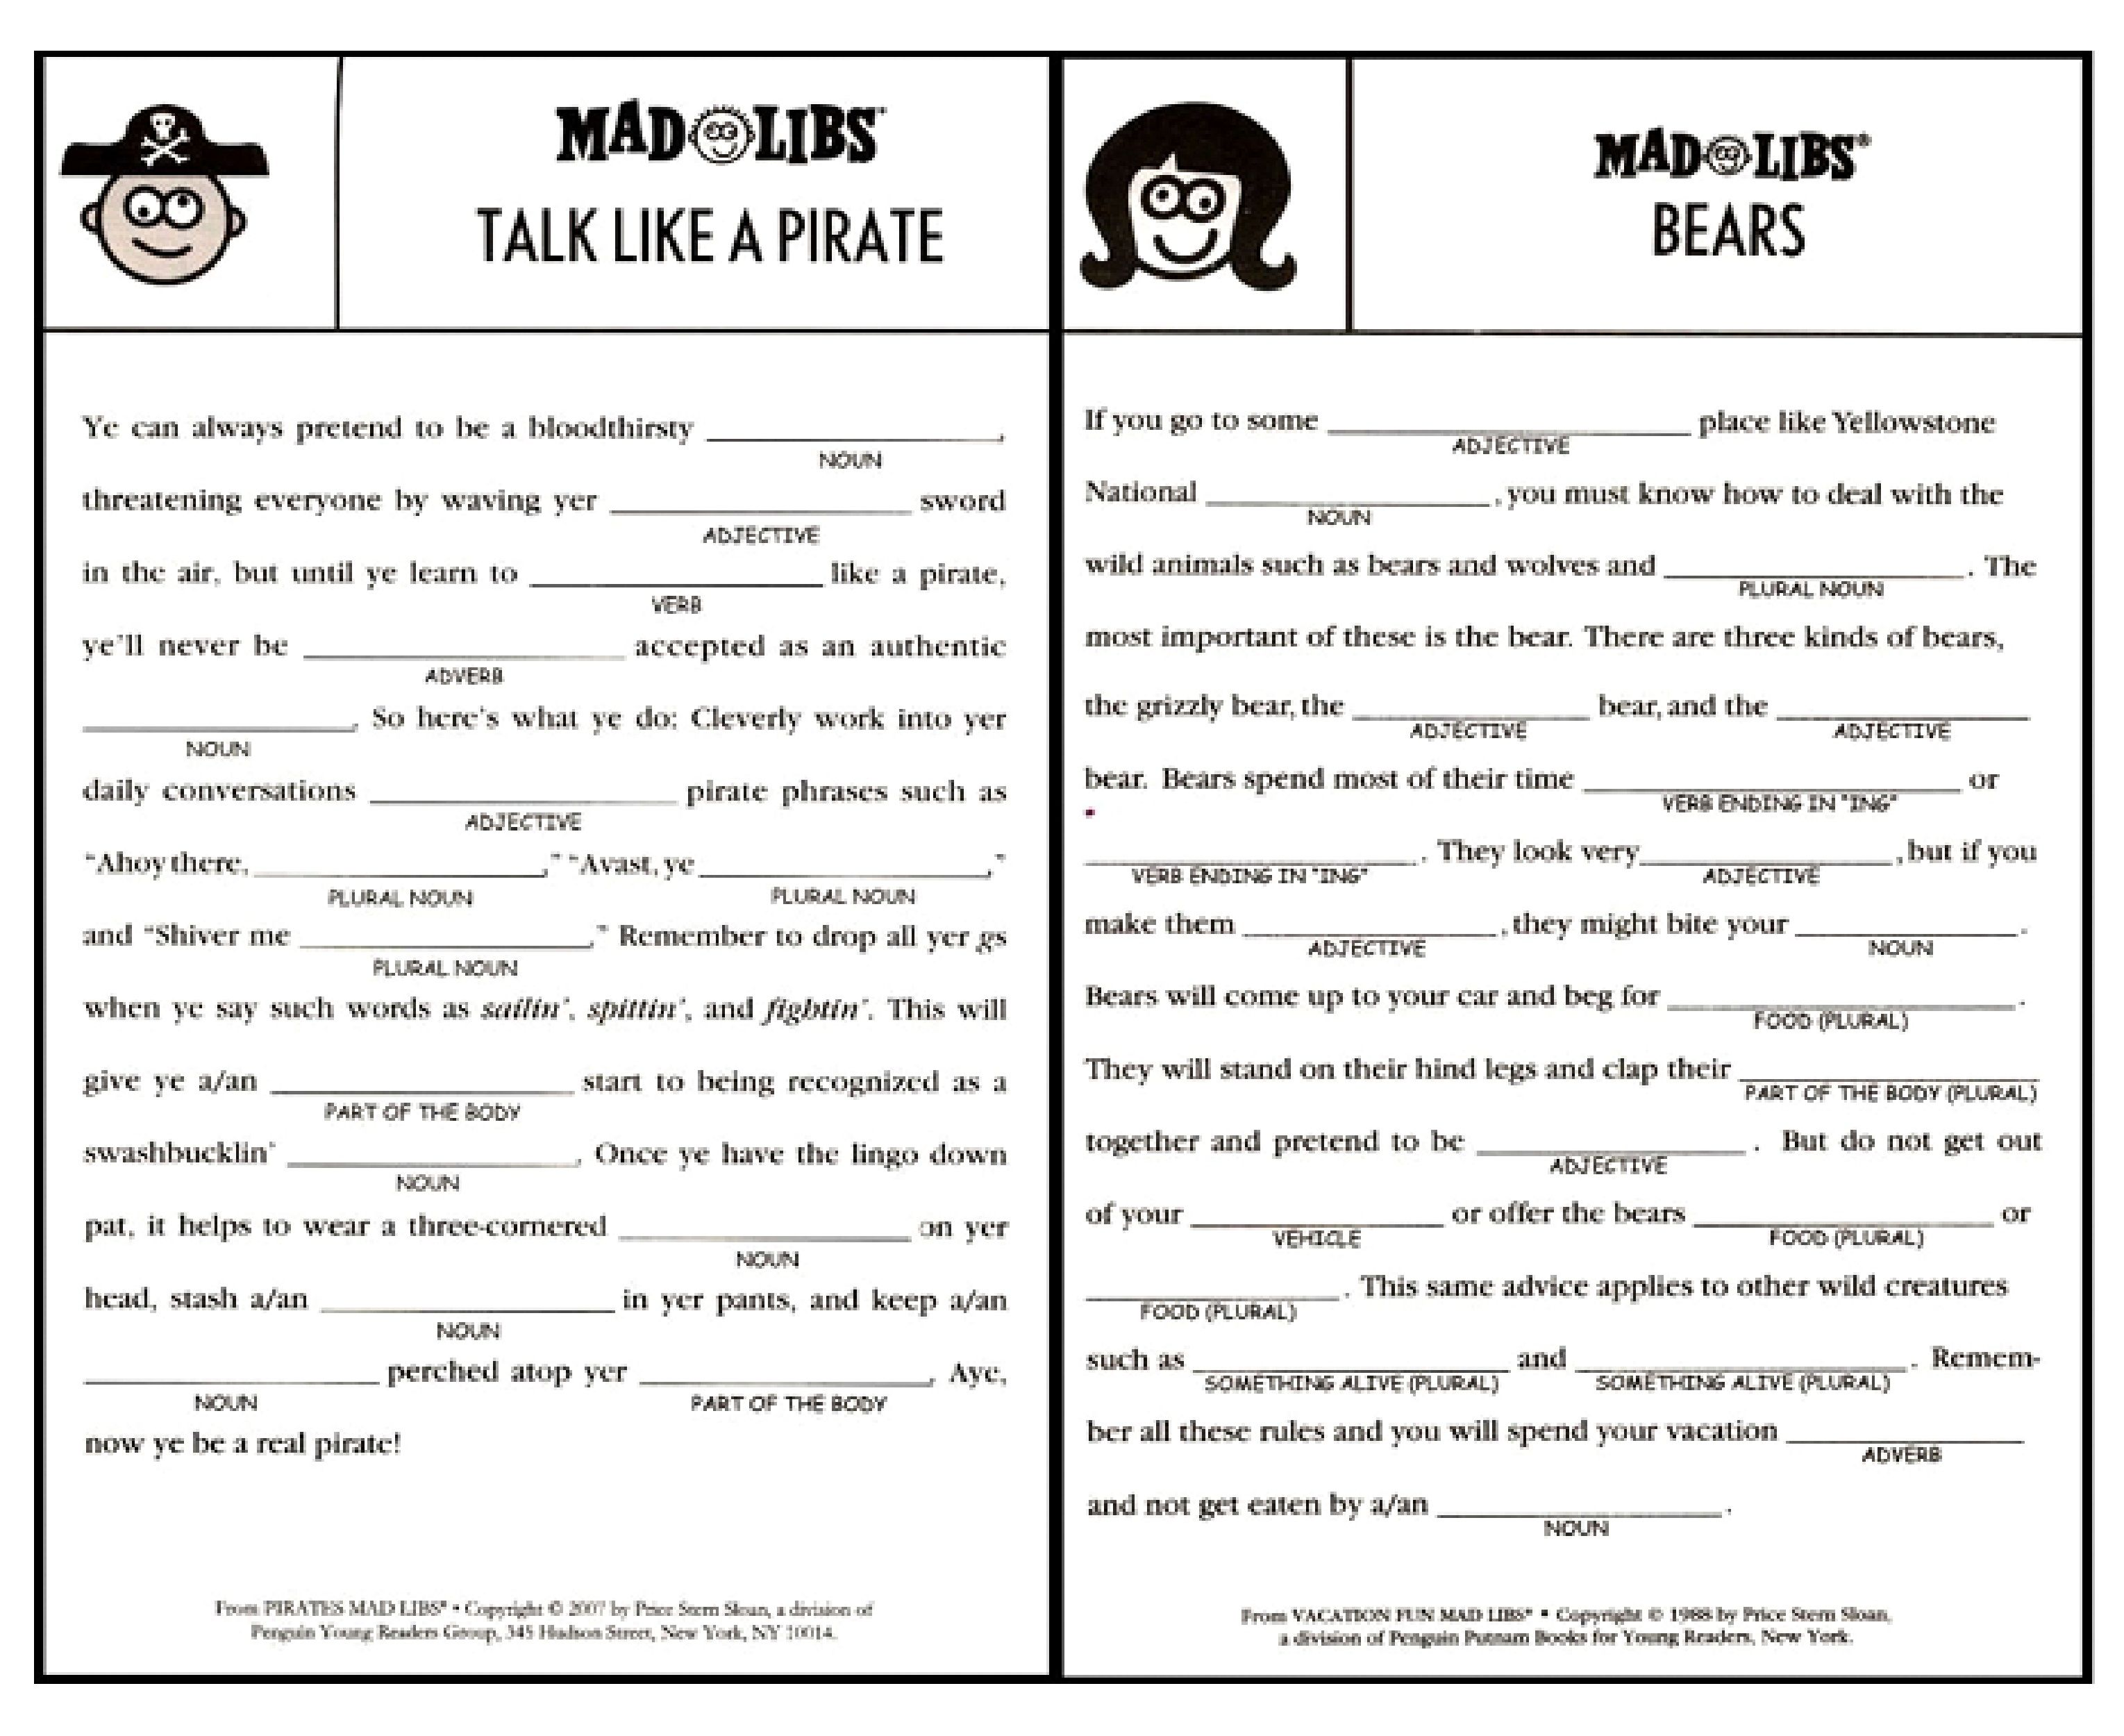 picture relating to Printable Mad Libs Sheets for Adults known as printable crazy libs sheets for grownups - Google Seem